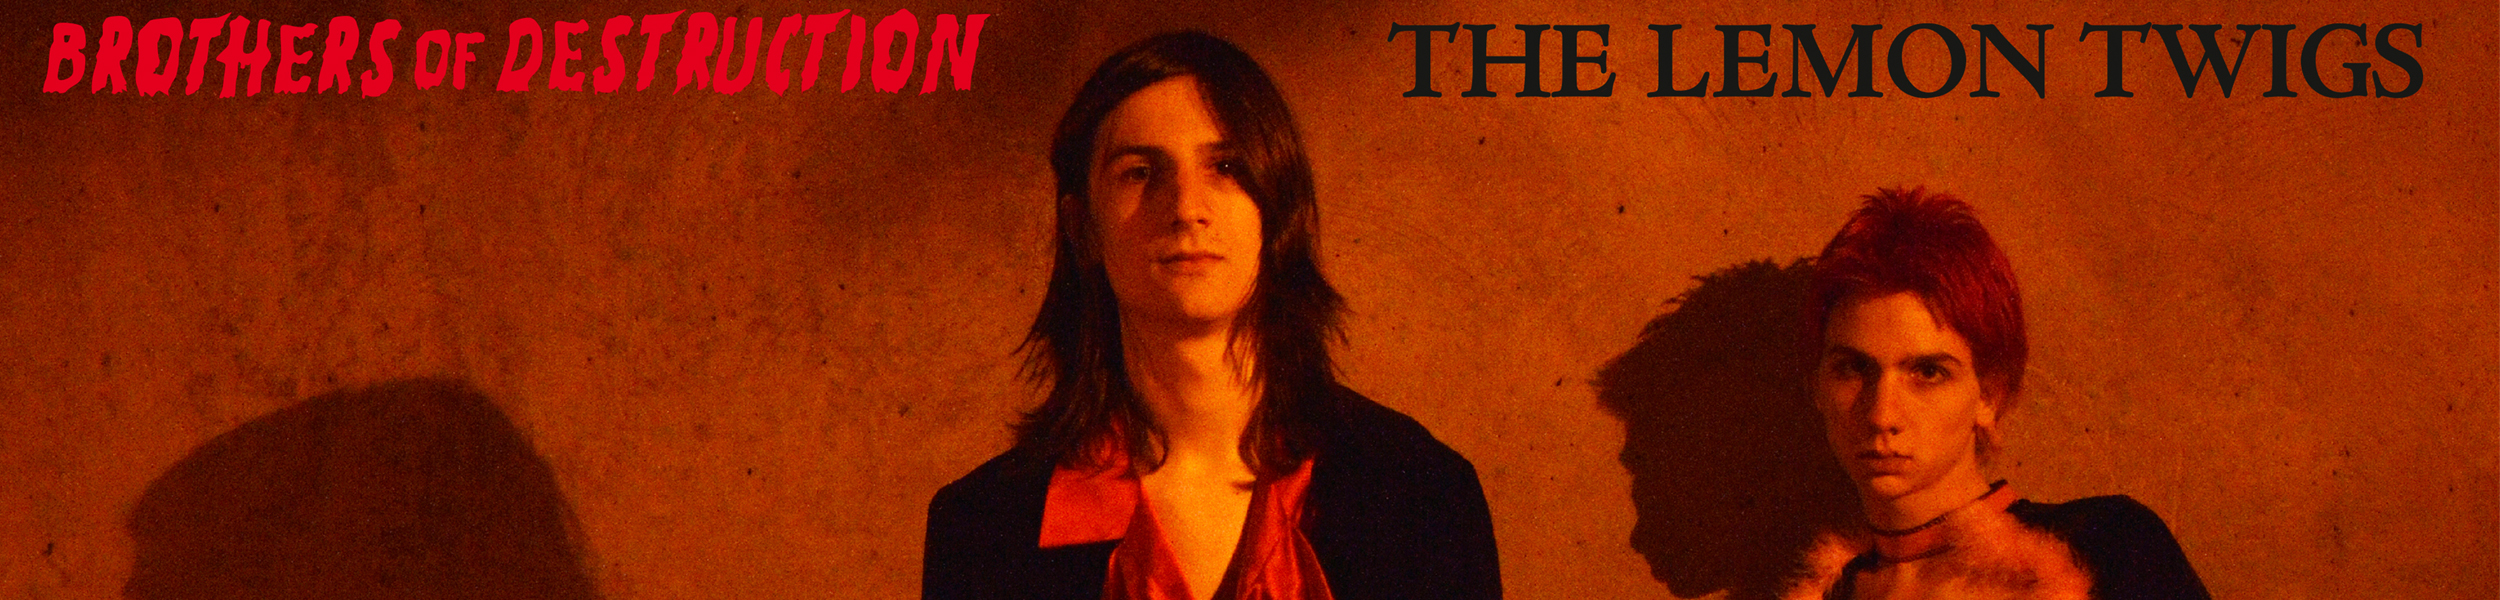 The Lemon Twigs - 'Brothers Of Destruction' Out Today